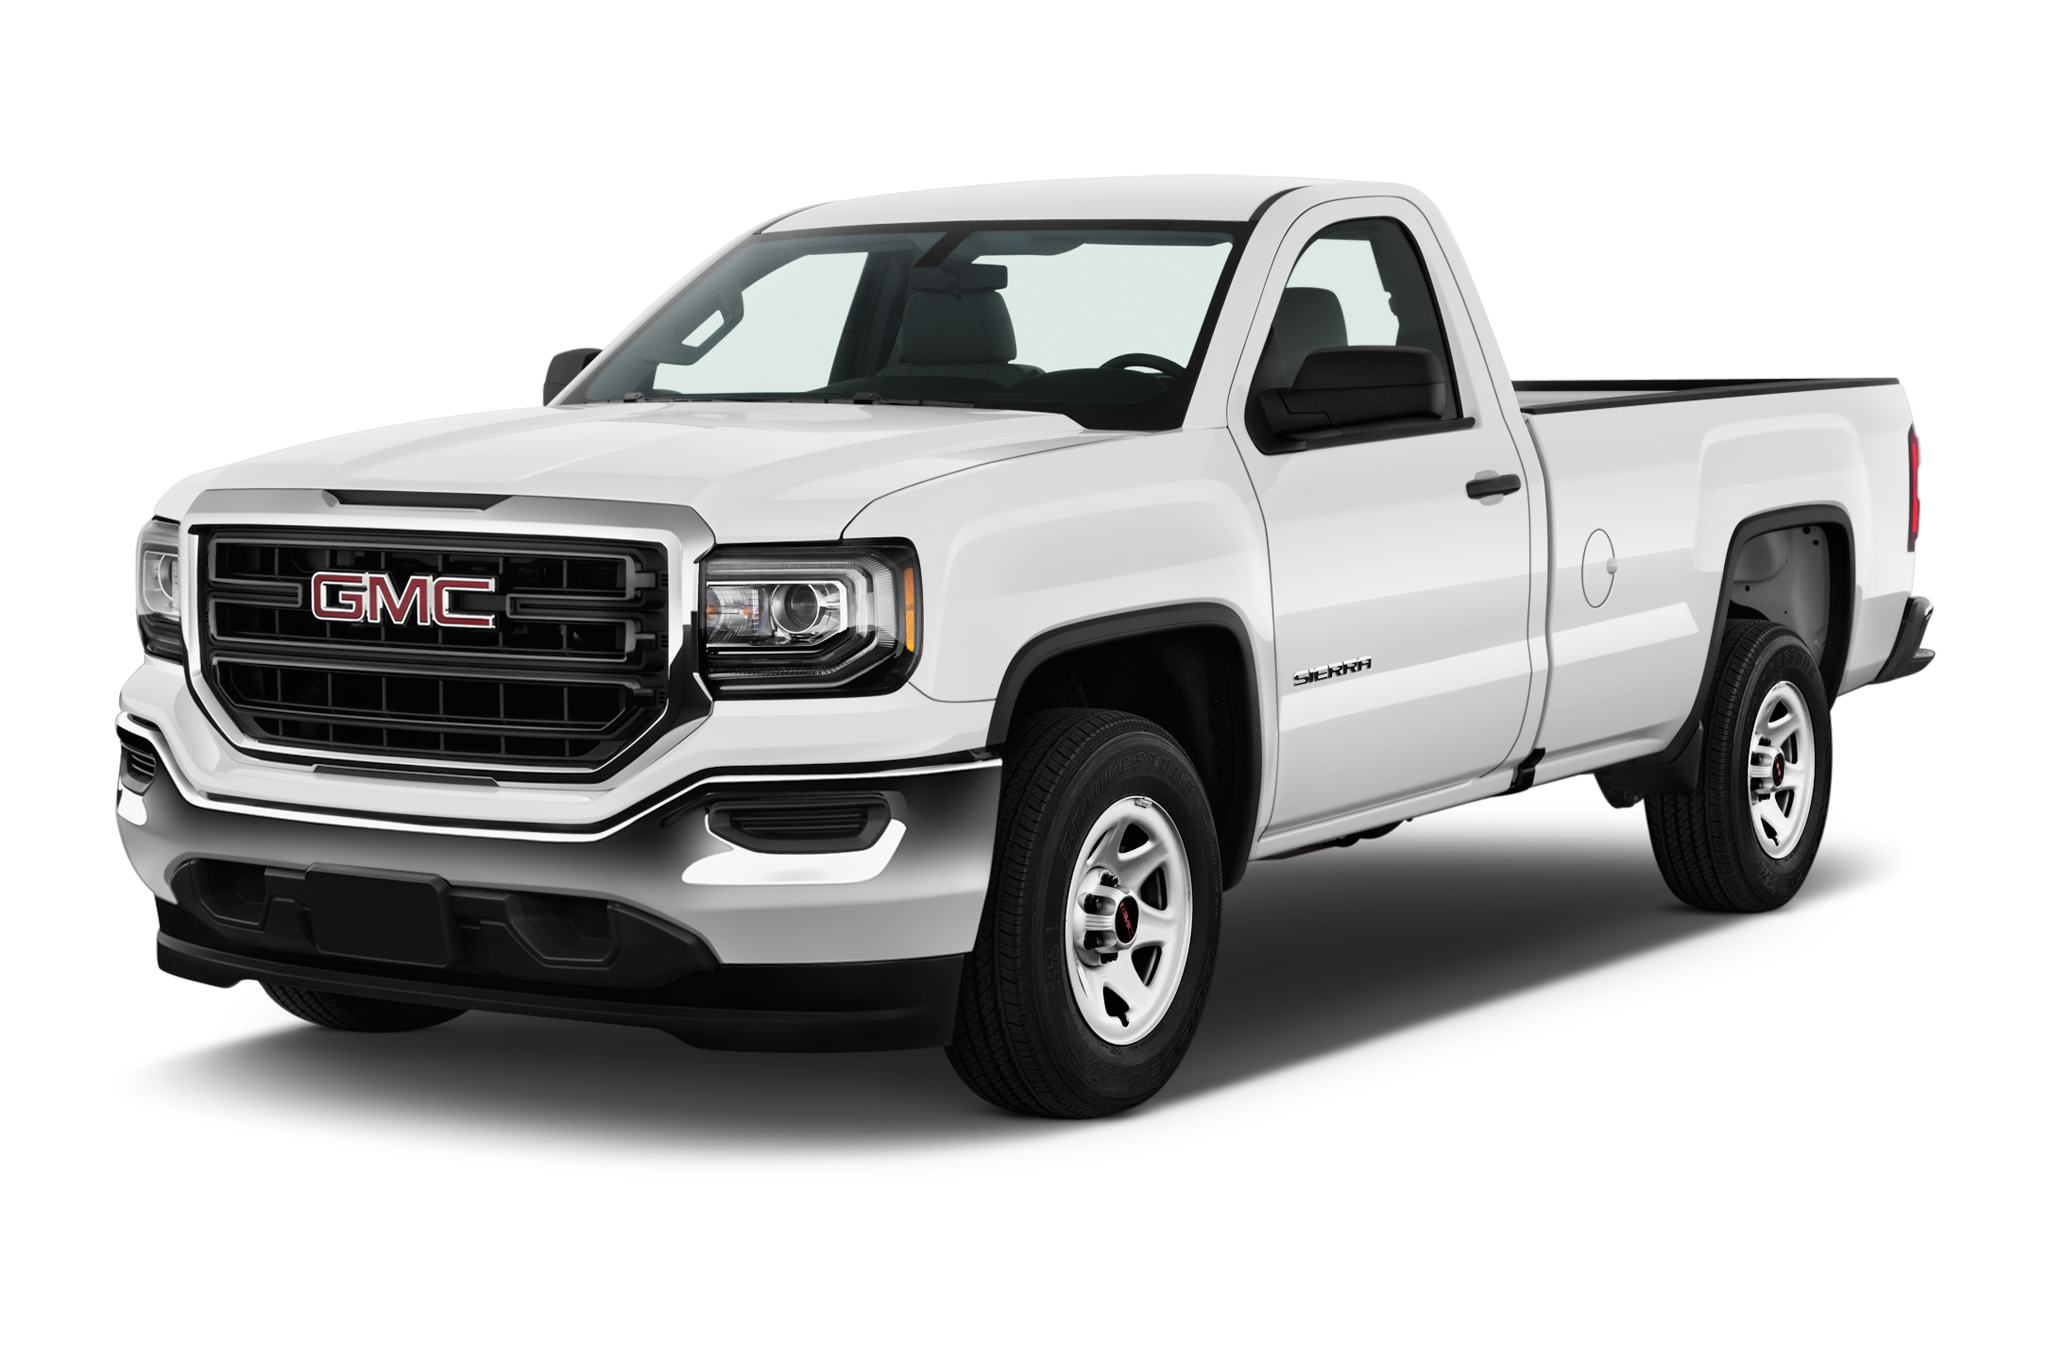 2017 gmc sierra 1500 4wd regular cab long box sle pricing msn autos. Black Bedroom Furniture Sets. Home Design Ideas